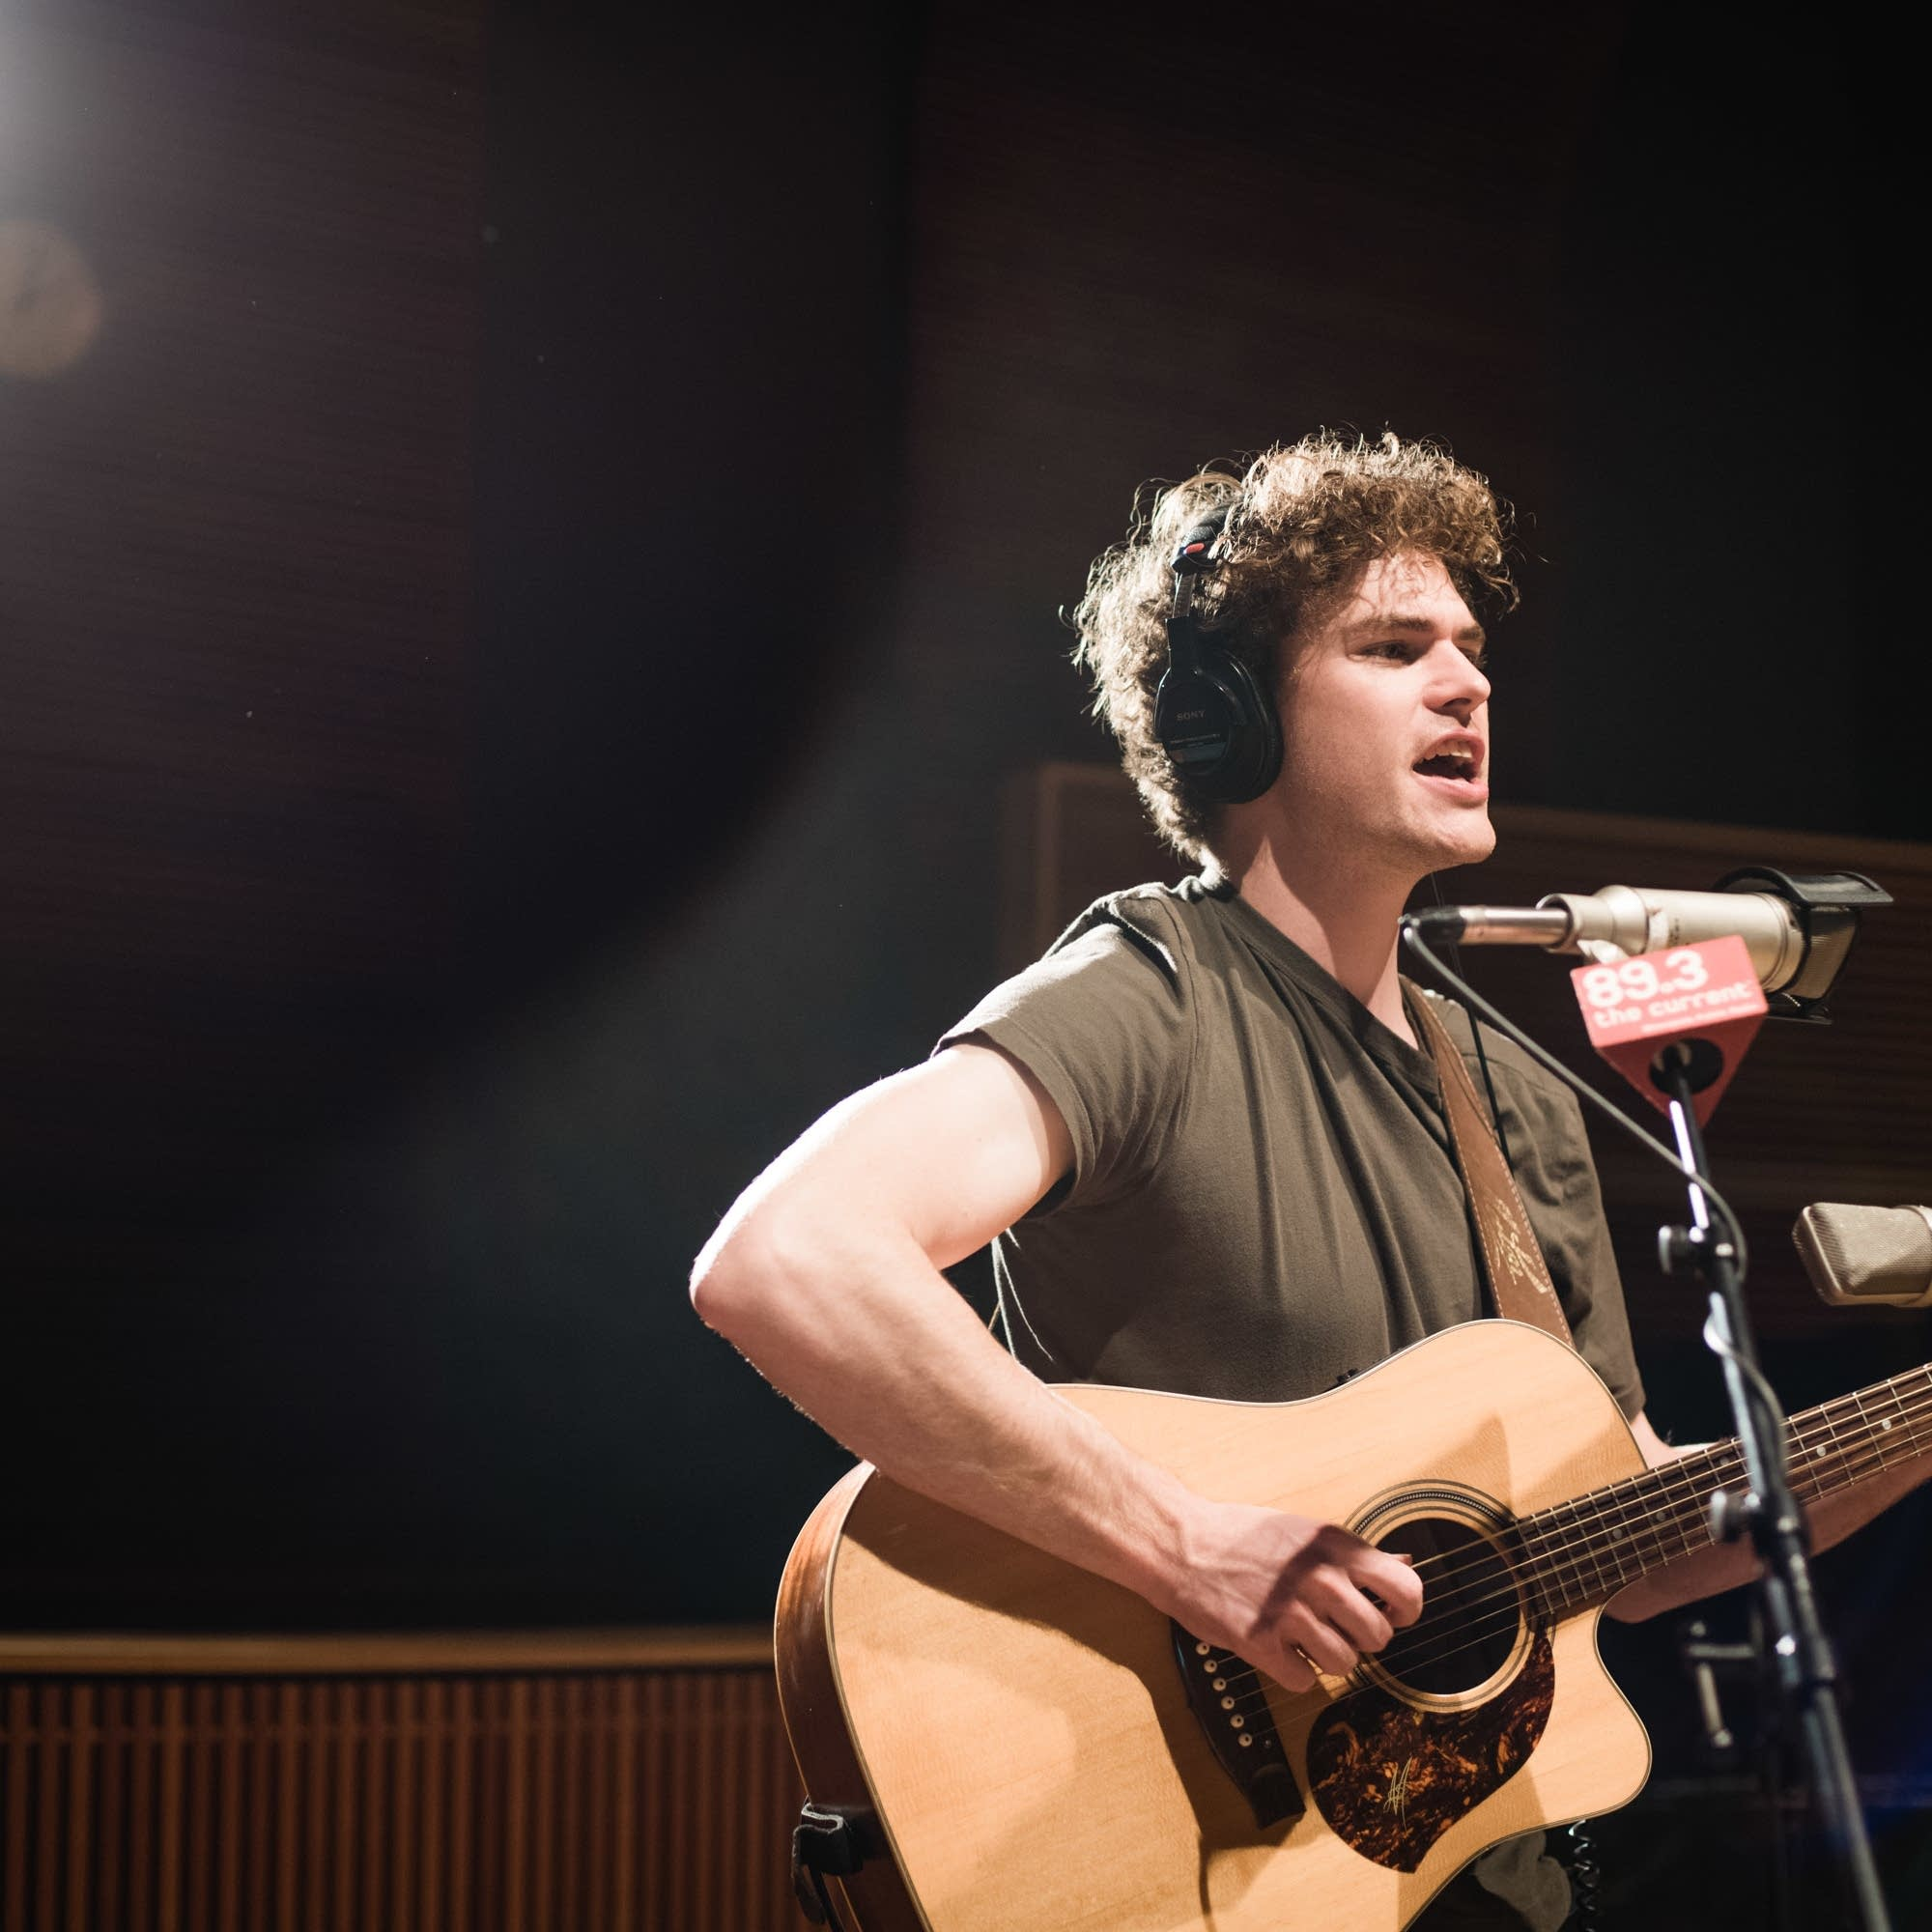 Vance Joy performs in The Current studio